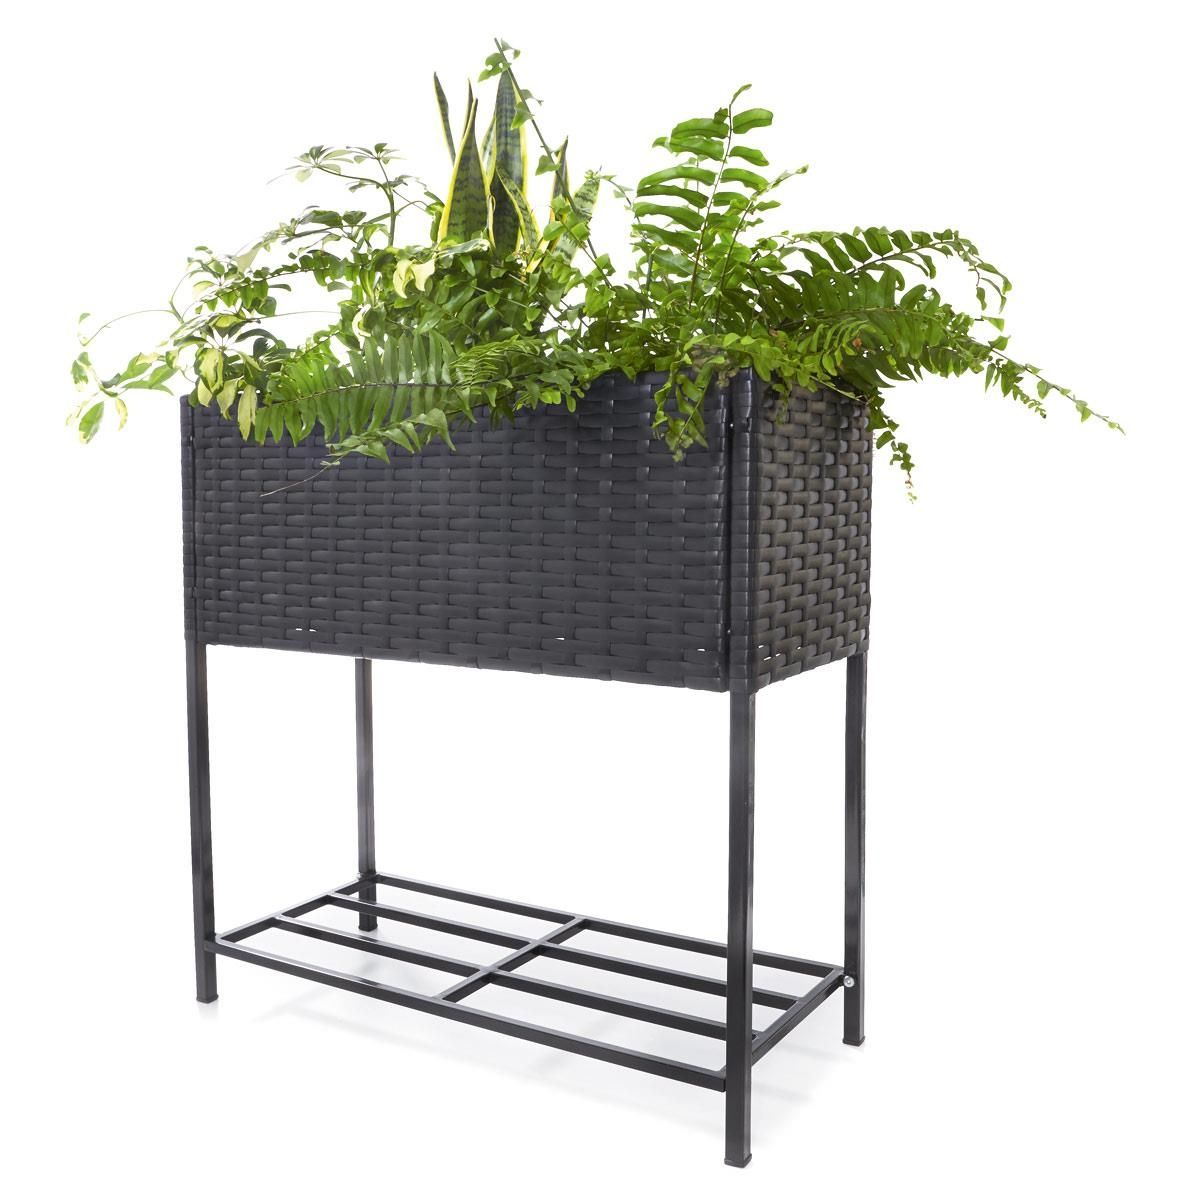 Elevated Plant Stands Raised Wicker Planter Black Kmart 39 Gardens